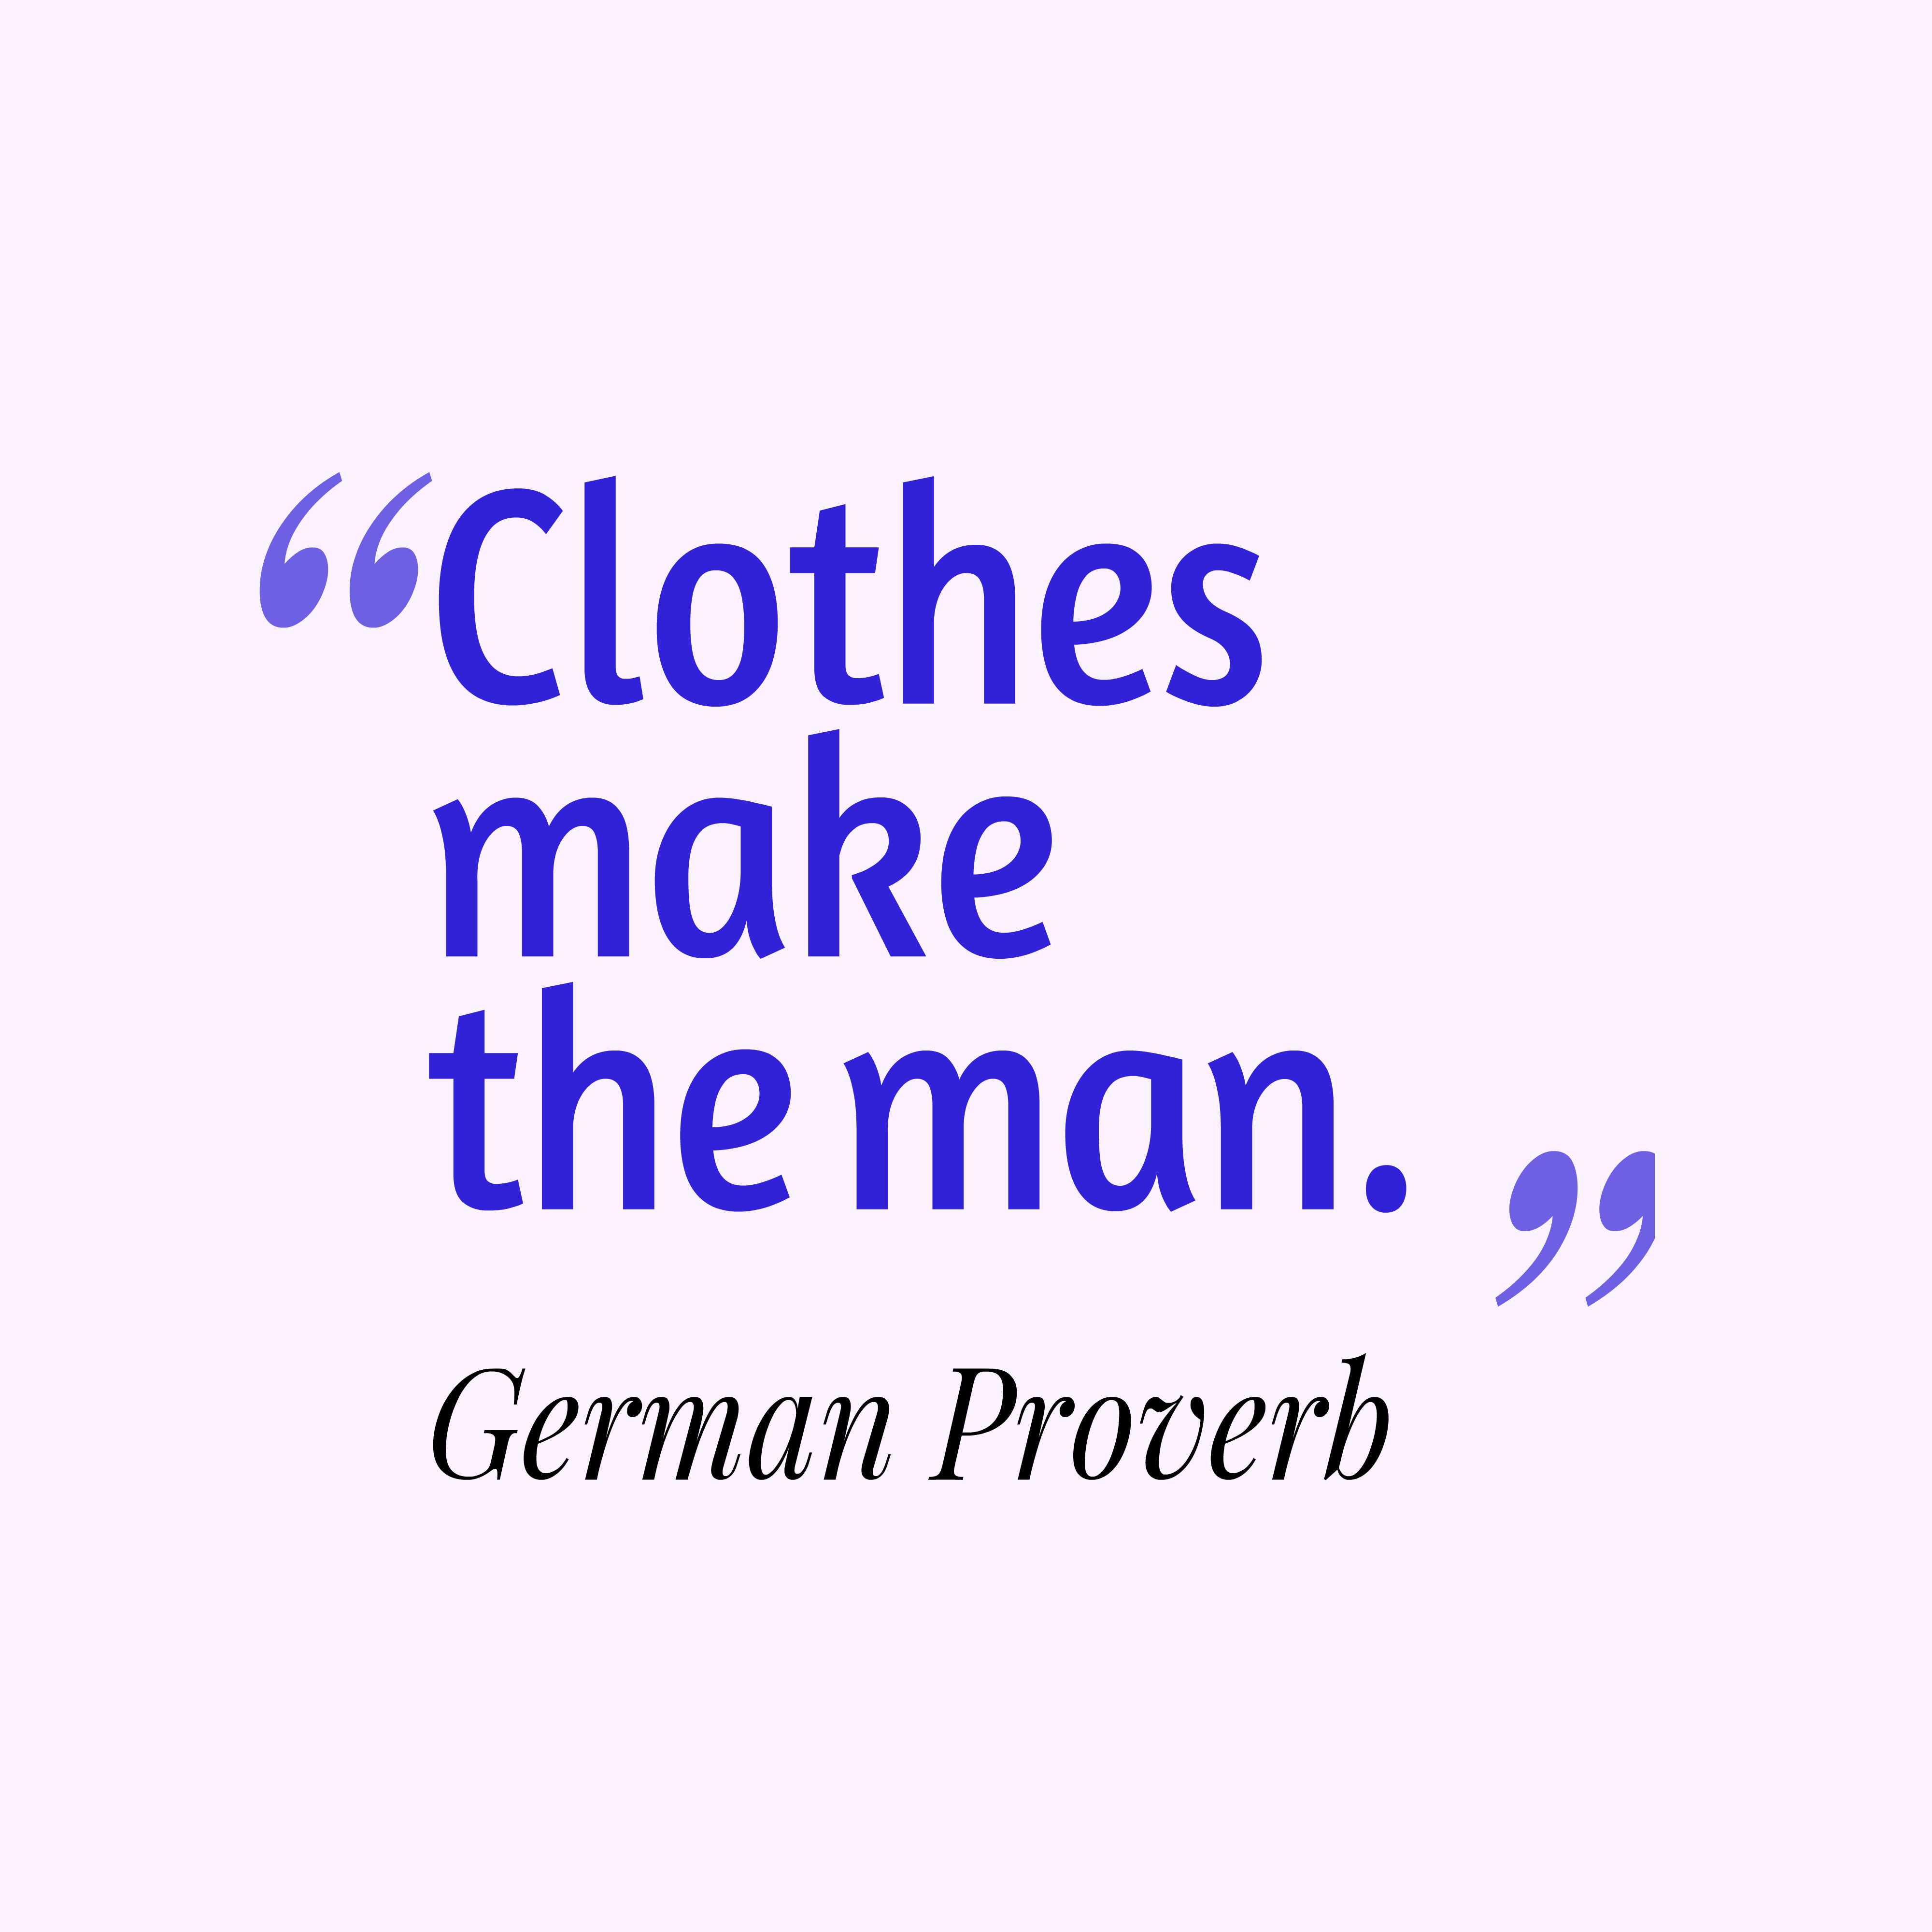 do clothes make the man What does the proverb clothes do not make the man mean learn the meaning, expansion, explanation, and origin of proverb clothes do not make the man.